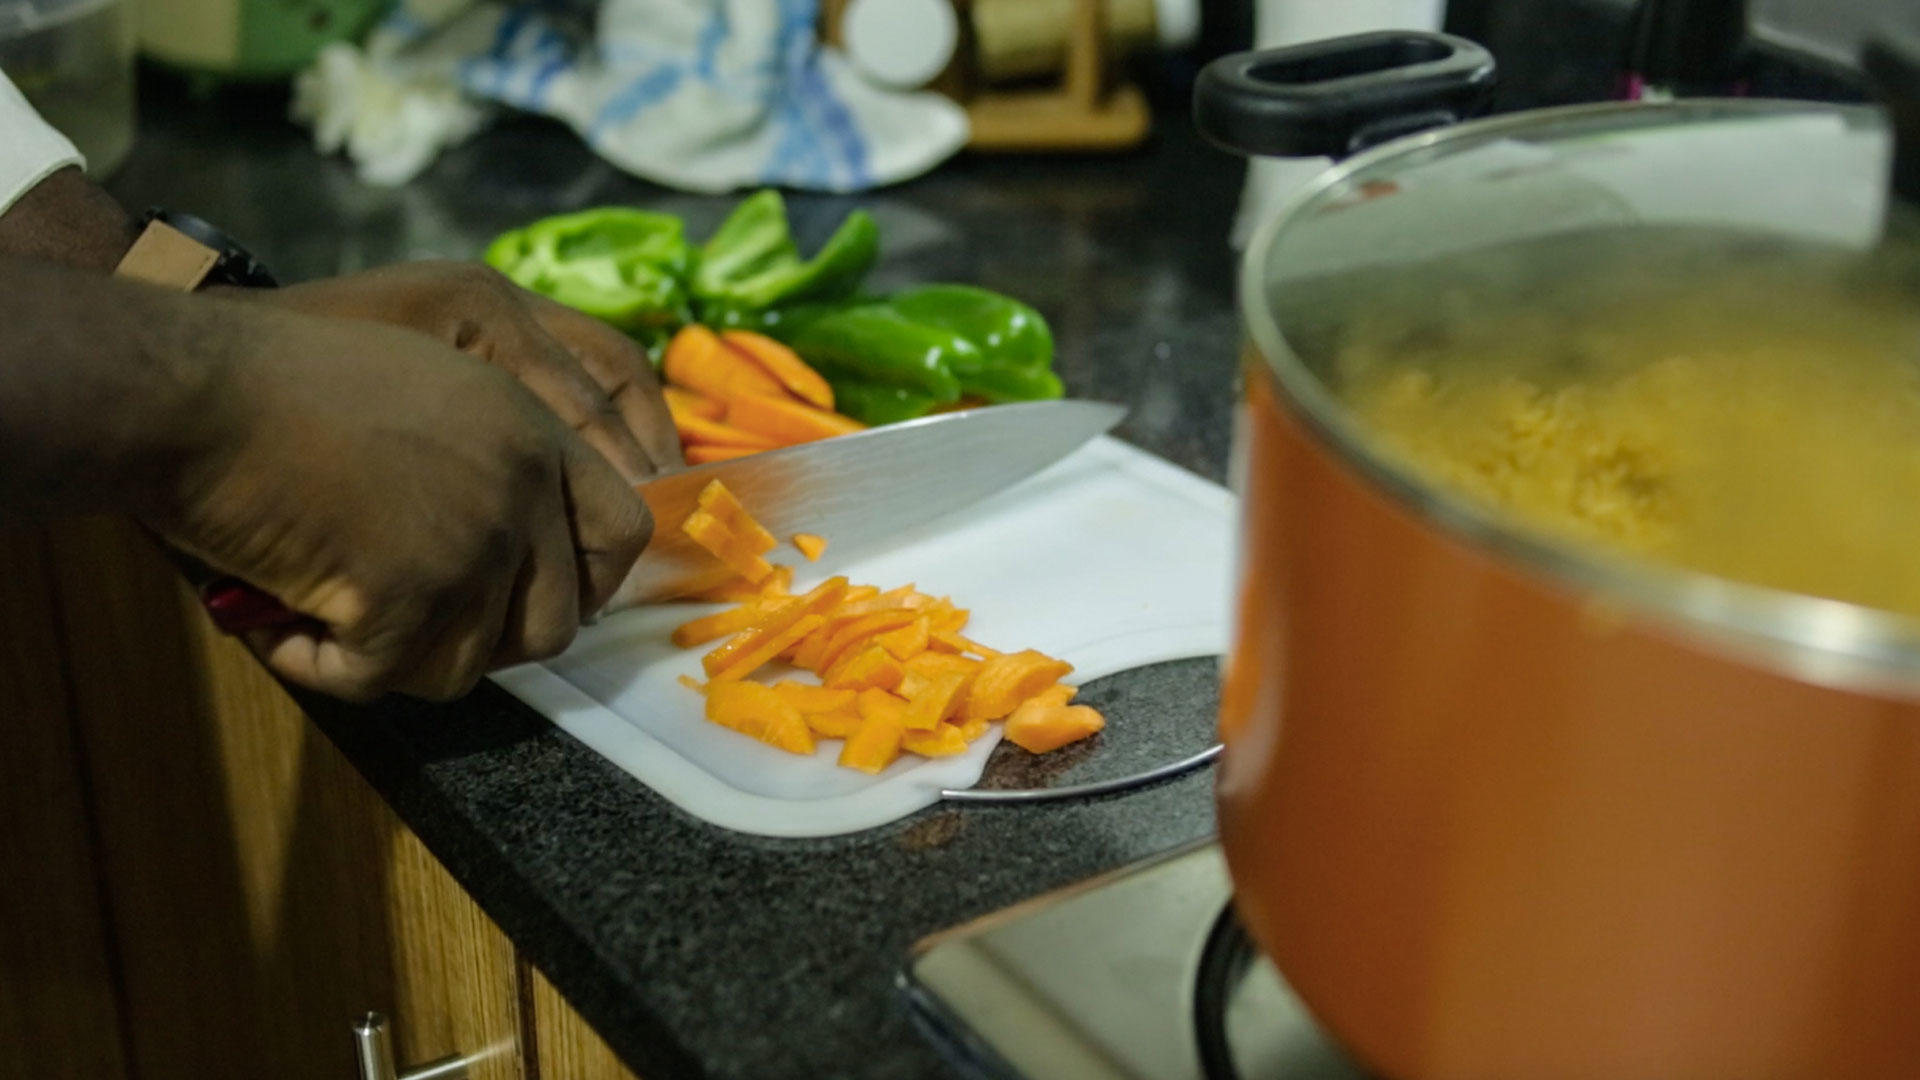 The Making & Eating of Ghanaian Jollof Rice